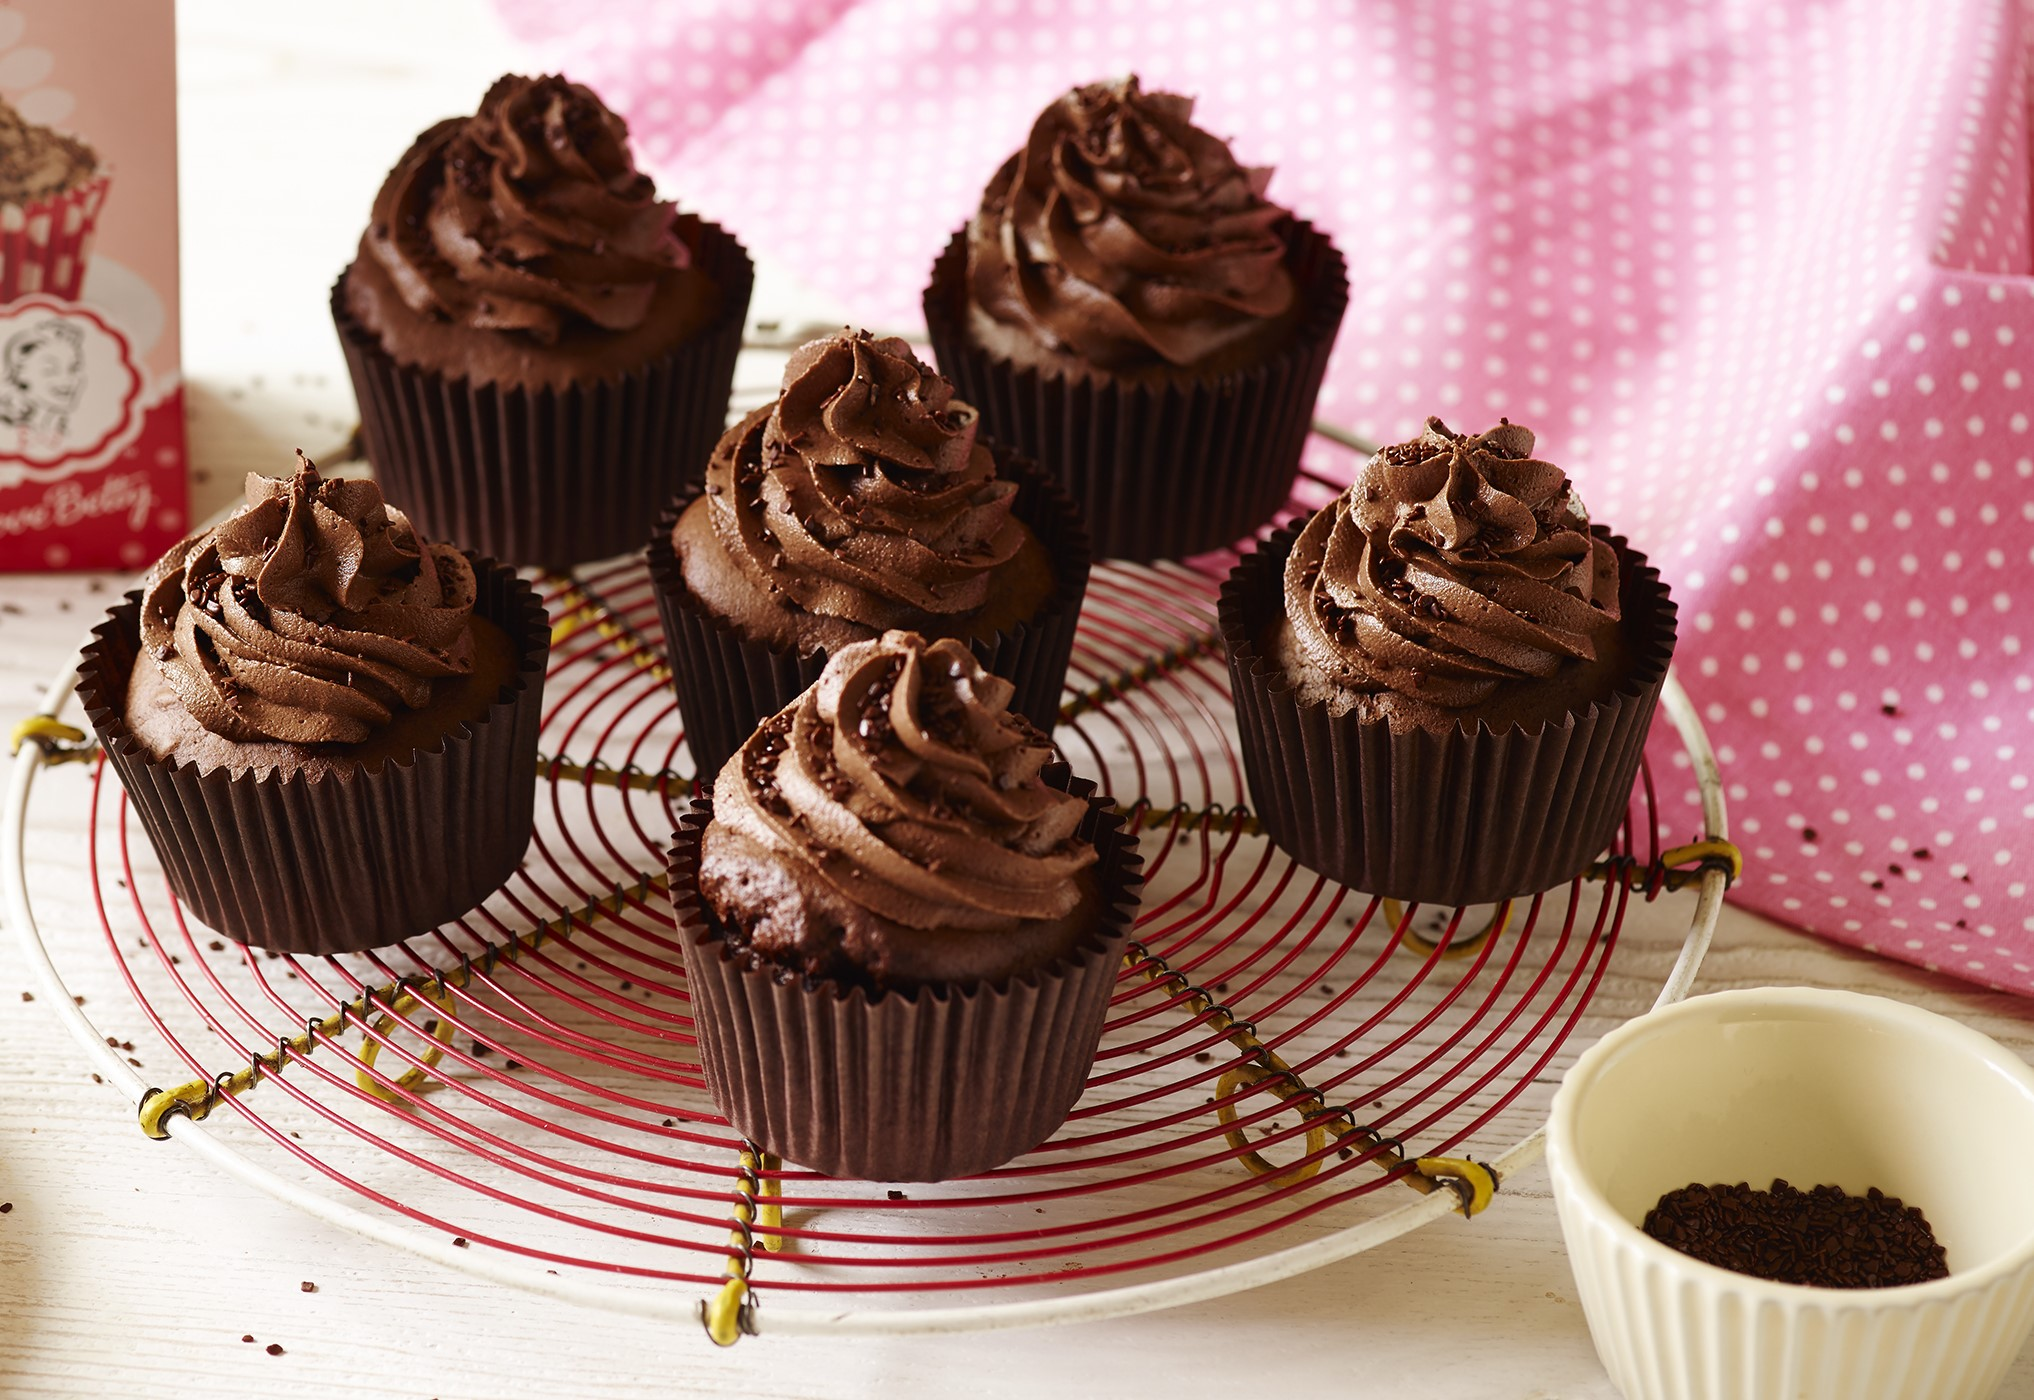 Chocolate cupcakes on a cake stand